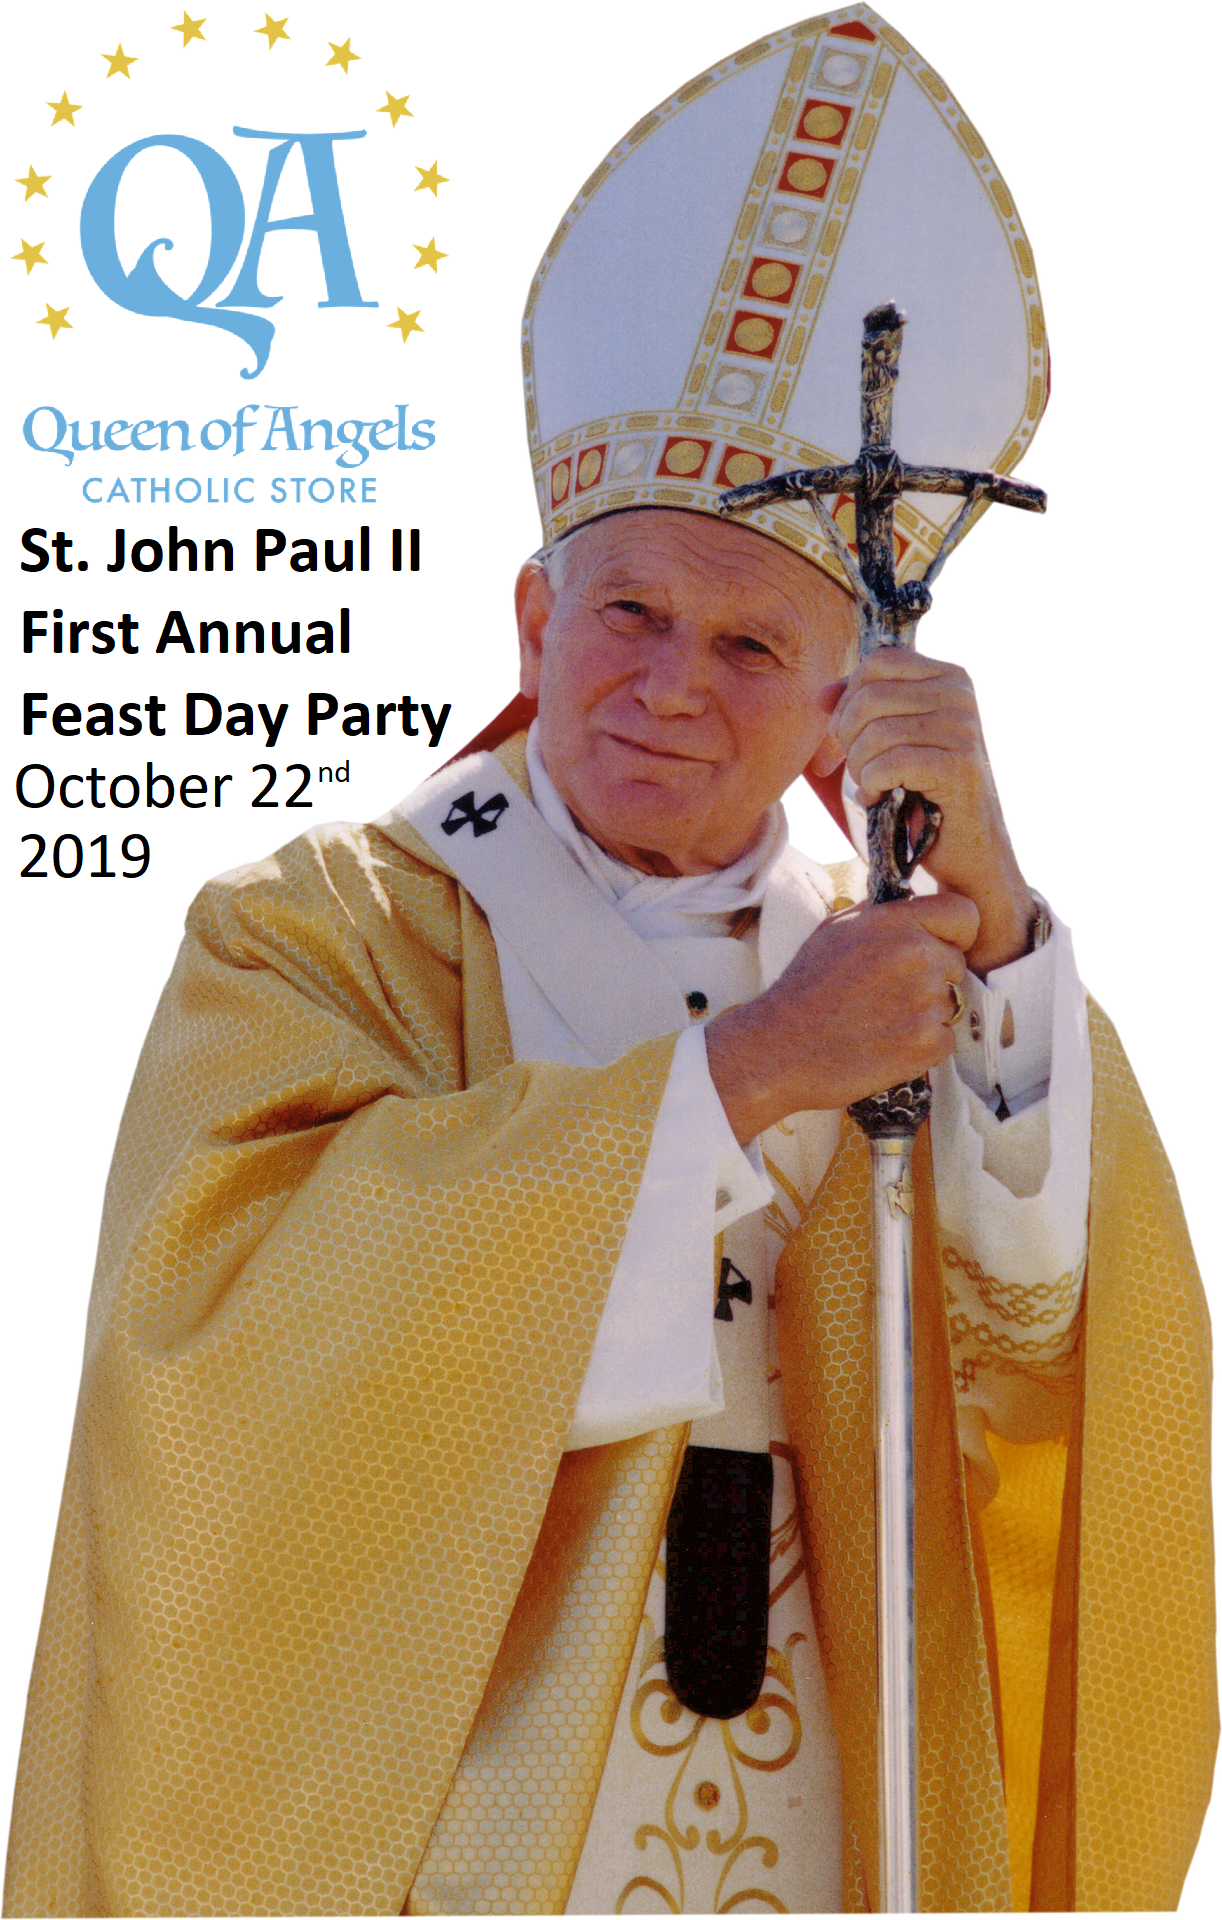 St. John Paul II First Annual Feast Day Party